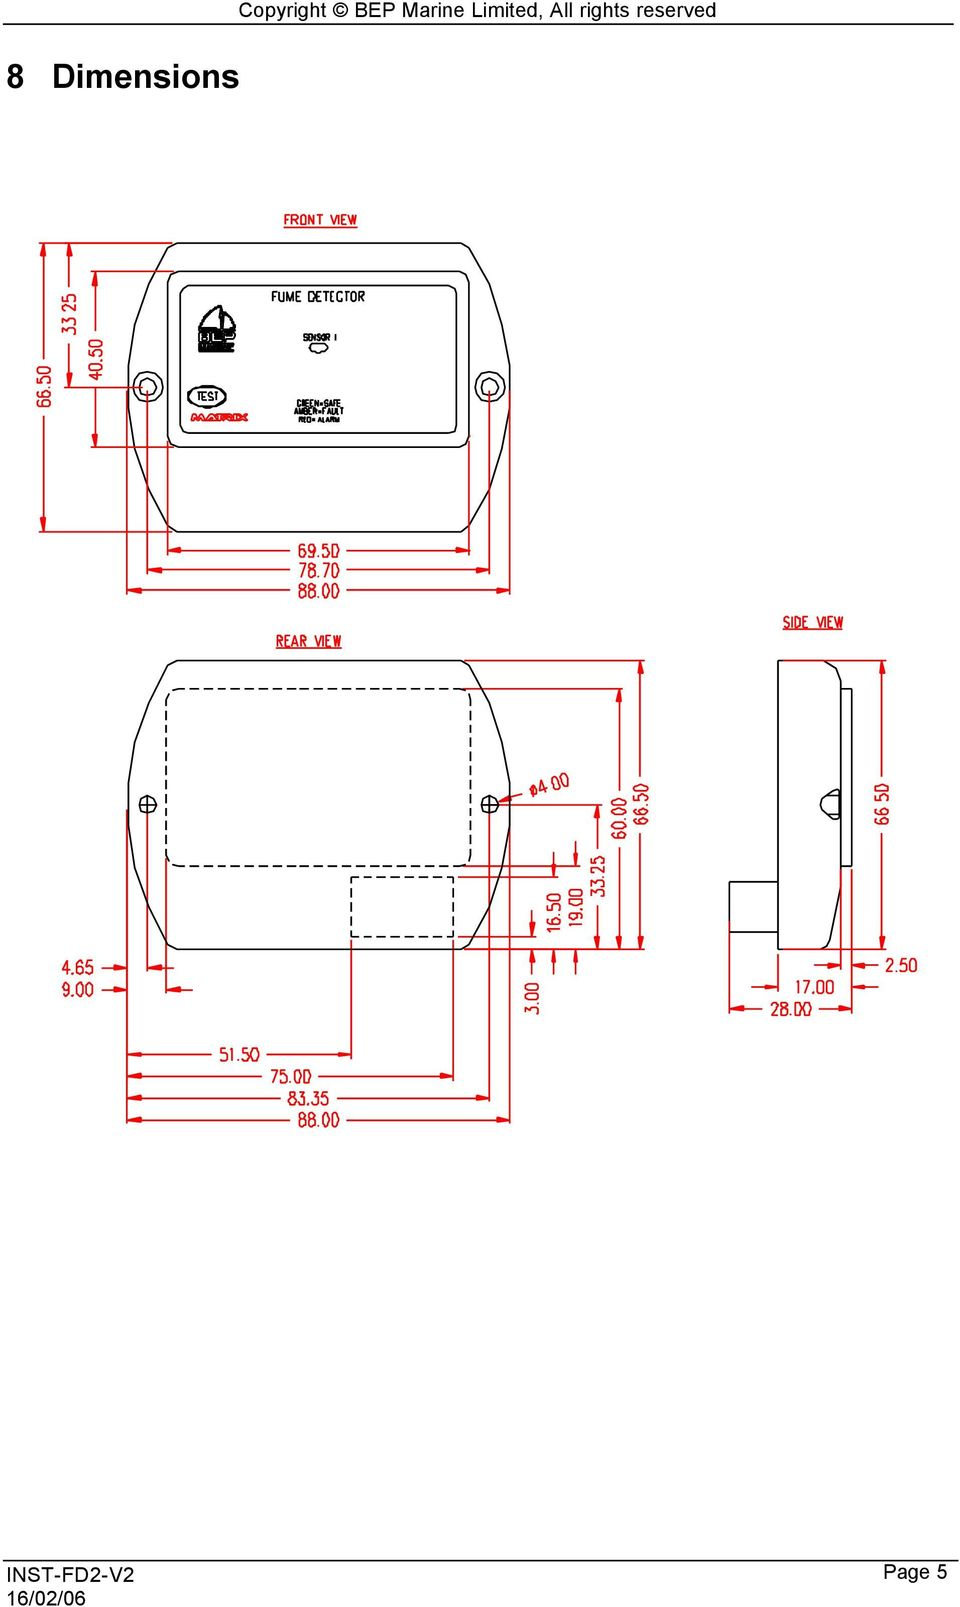 hight resolution of 6 9 wiring diagram copyright bep marine limited all rights reserved page 6